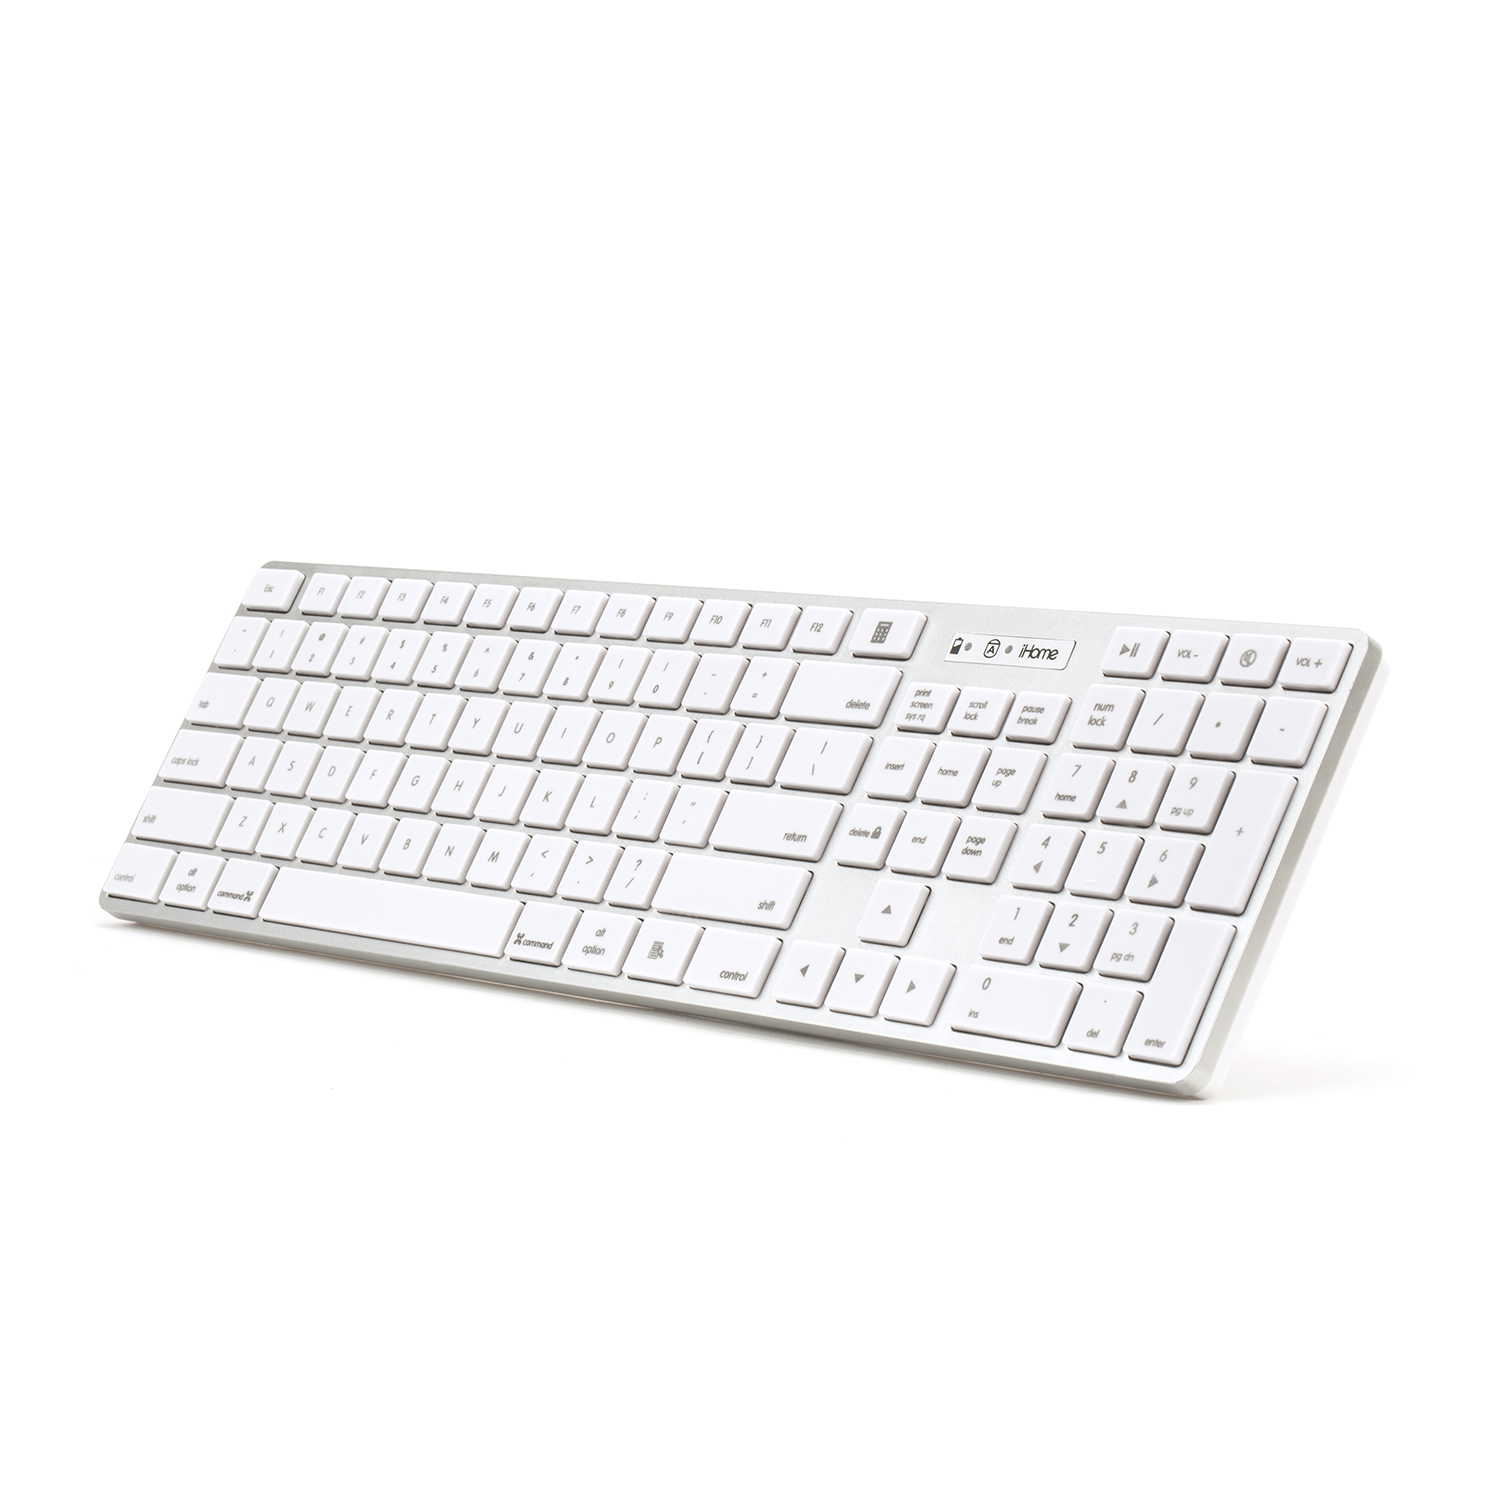 iHome | IMAC Wireless KB with 2.4G Nano Receiver (Silver)